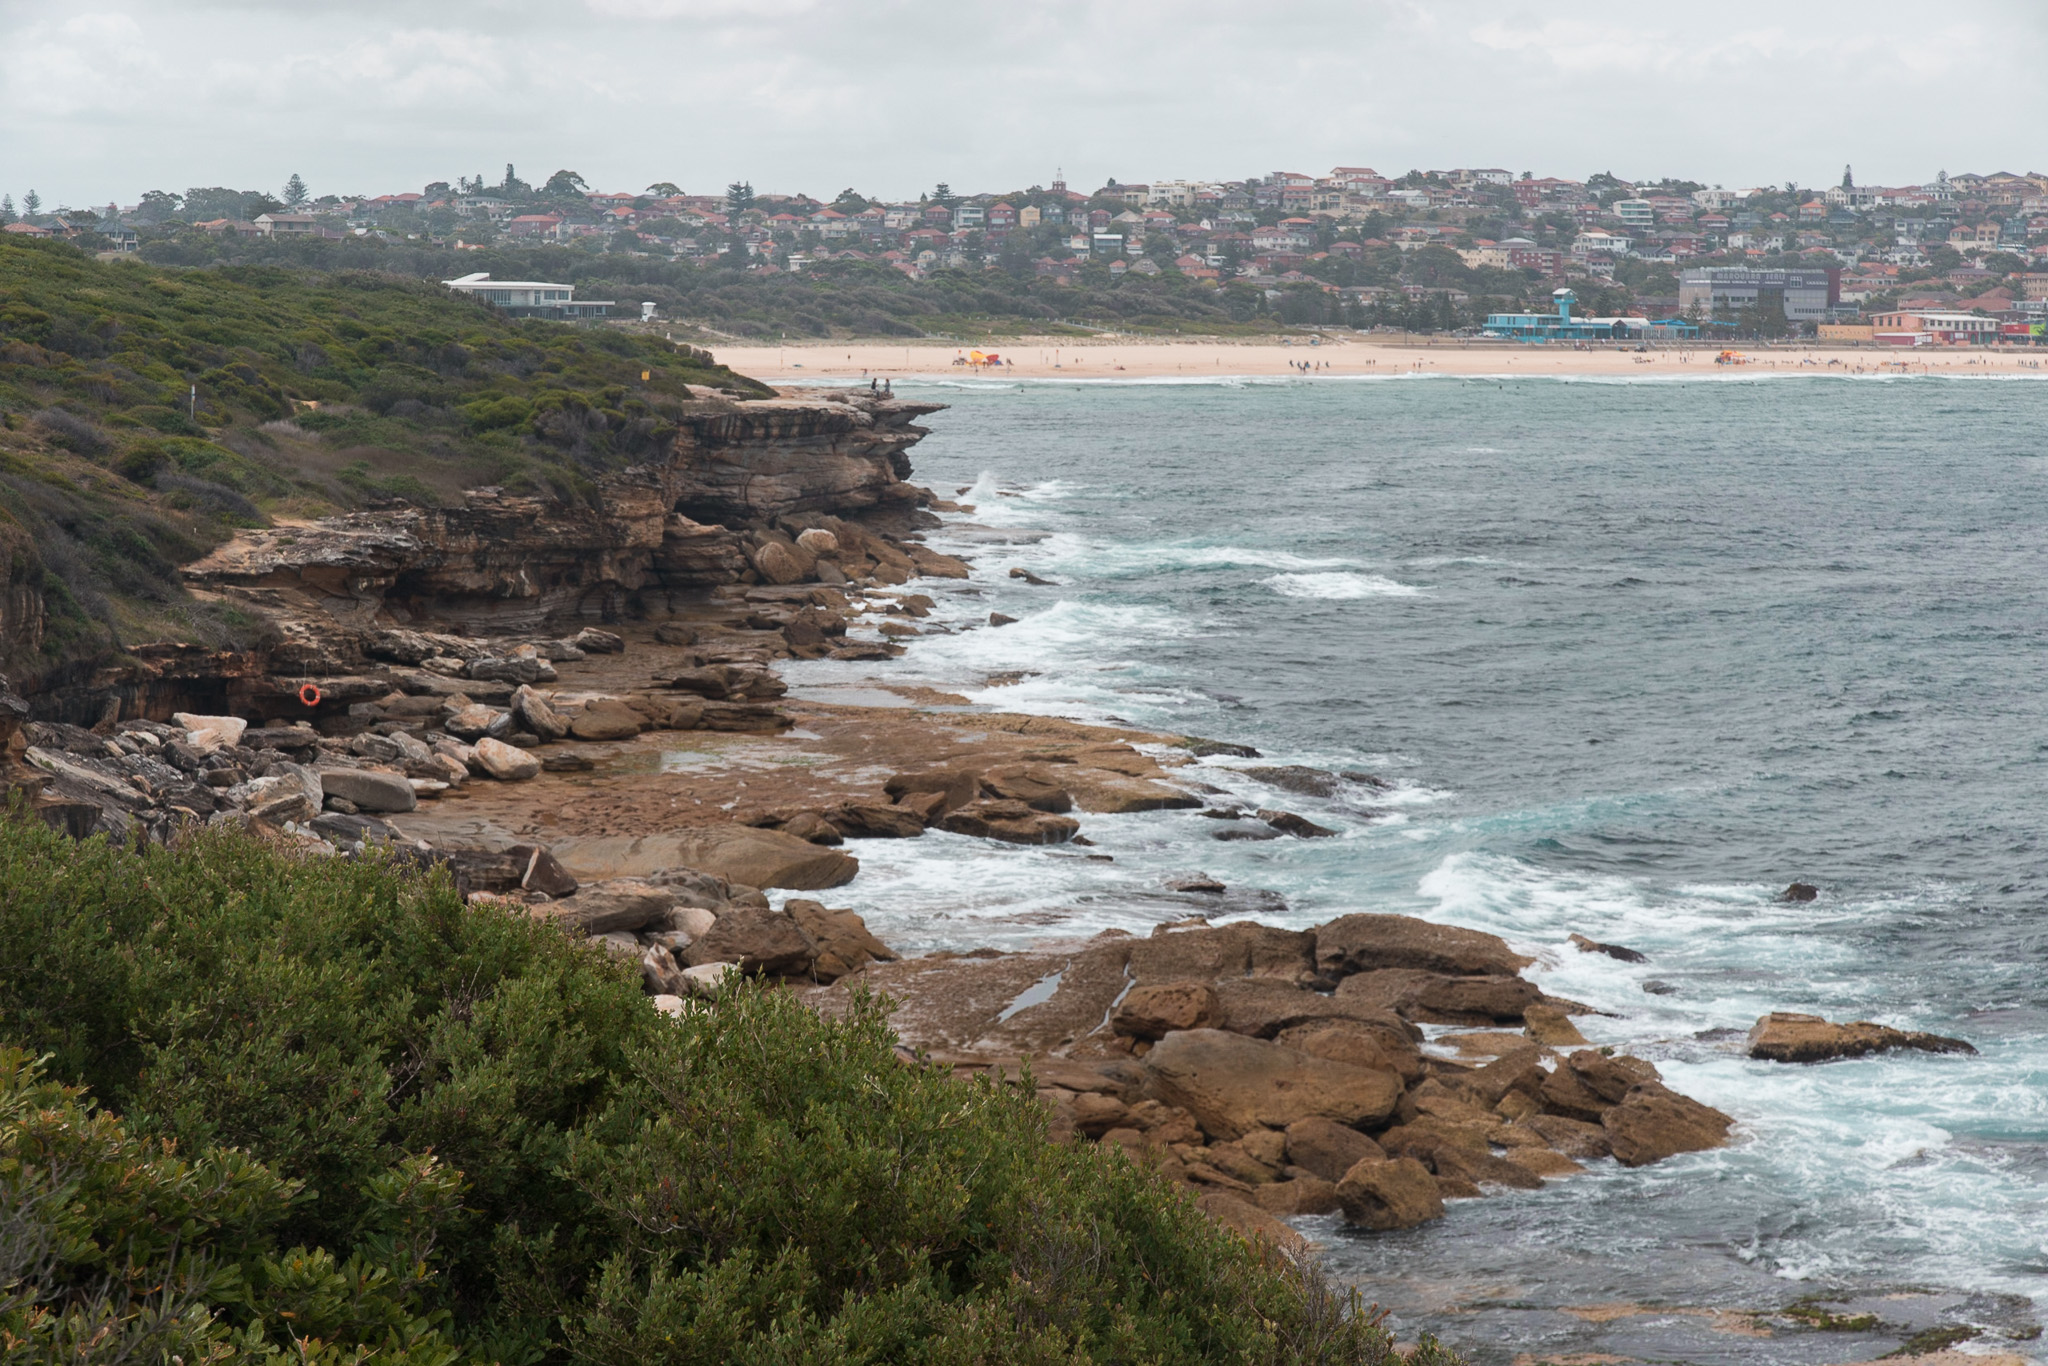 maroubra beach in eastern sydney